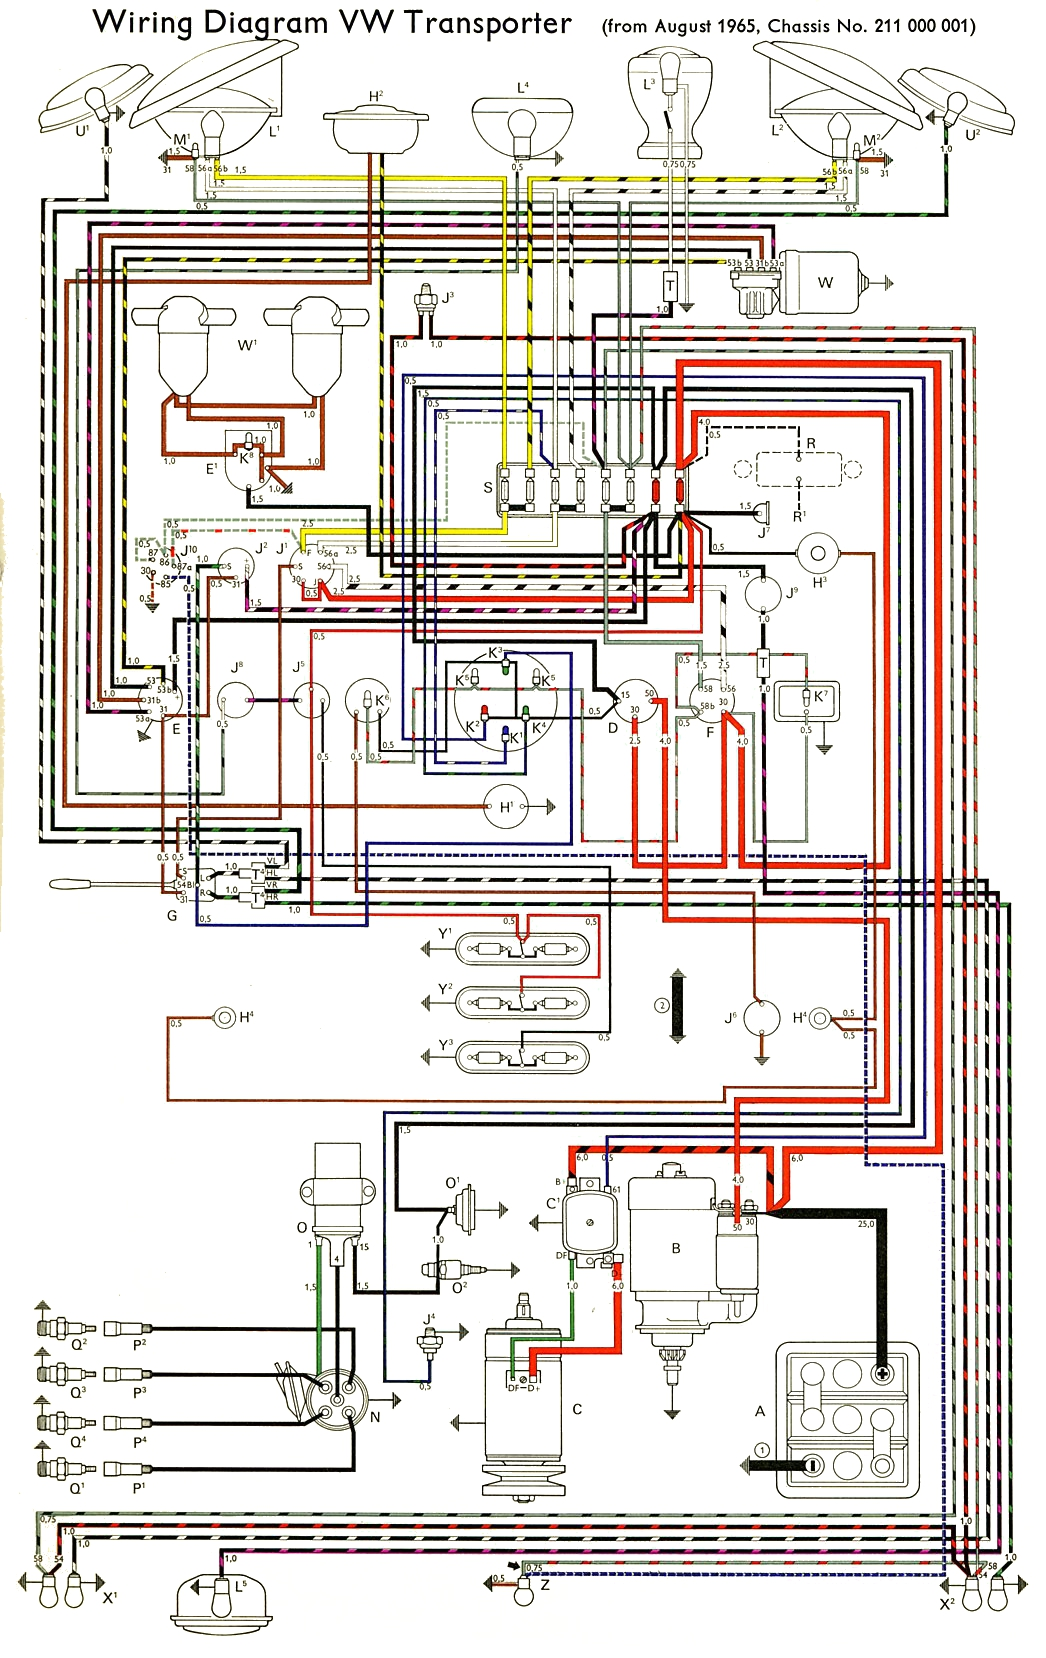 Vw T4 Wiring Diagram Pdf Wire Center Blank Green Printed Circuit Board Pcb Stock Photo Image 63563161 Example Electrical U2022 Rh Huntervalleyhotels Co 1974 Super Beetle 1976